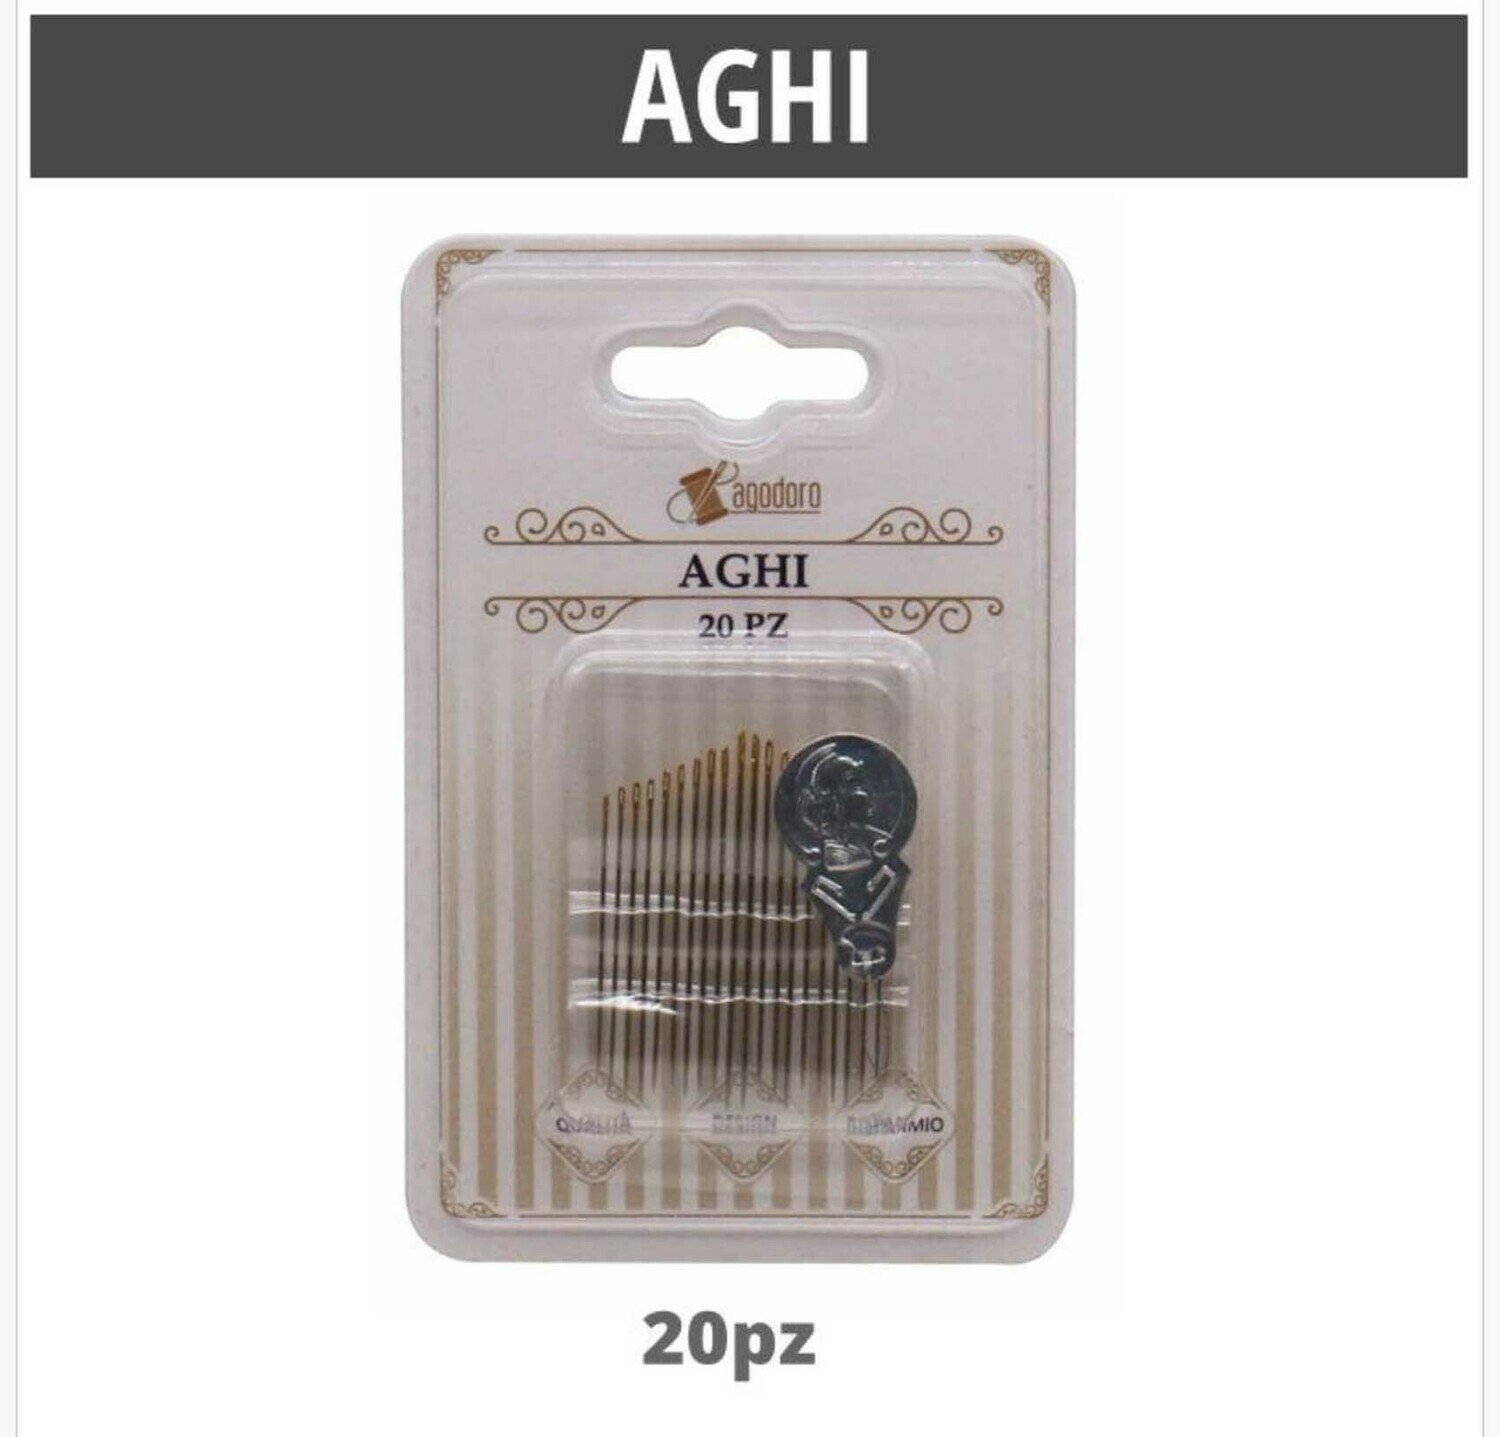 AGHI 20PZ